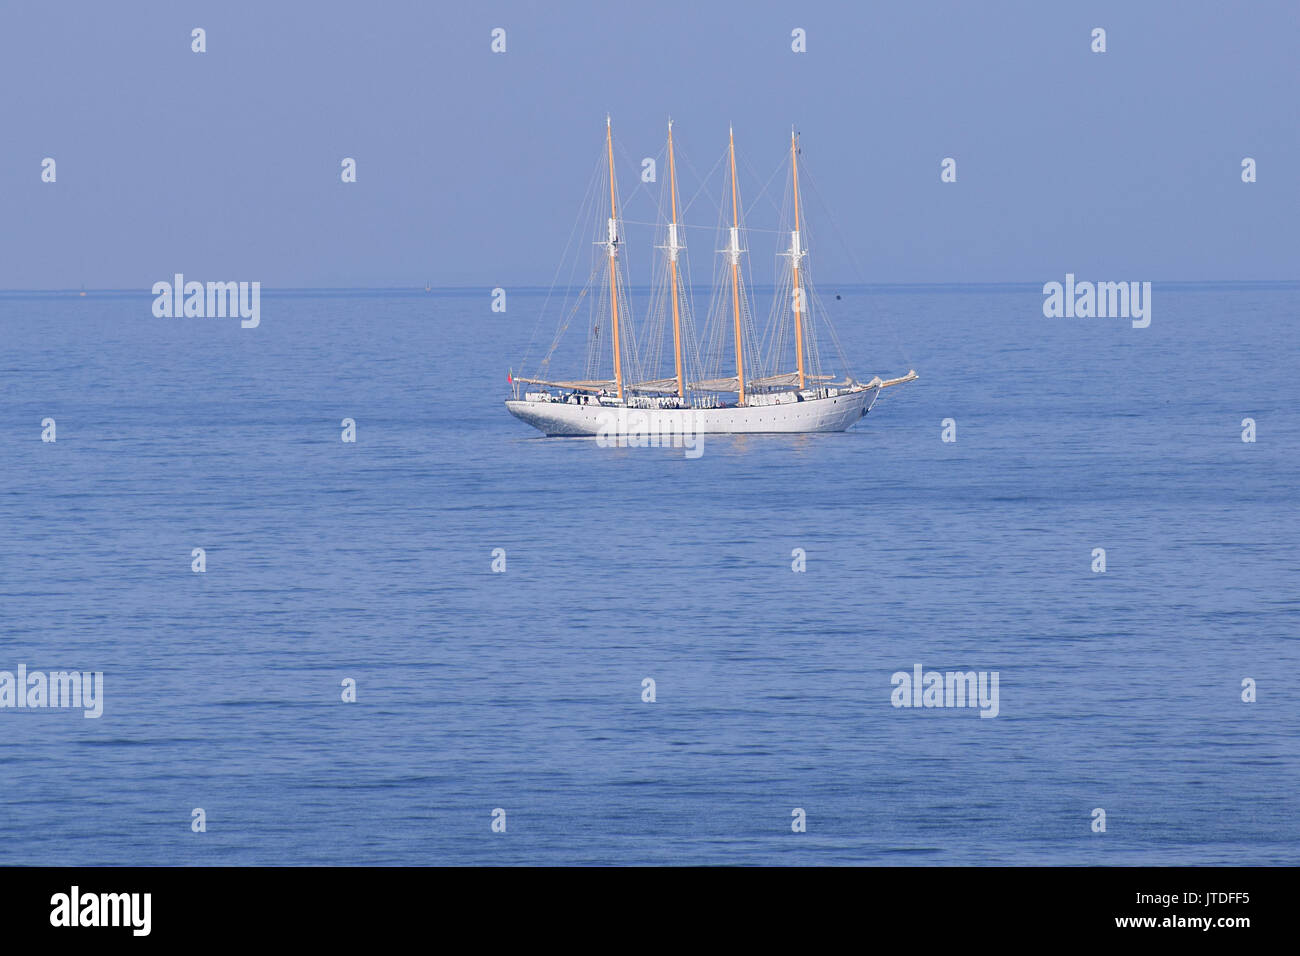 Tall masted ship, moored ready for the tall ships race 2017 - Stock Image